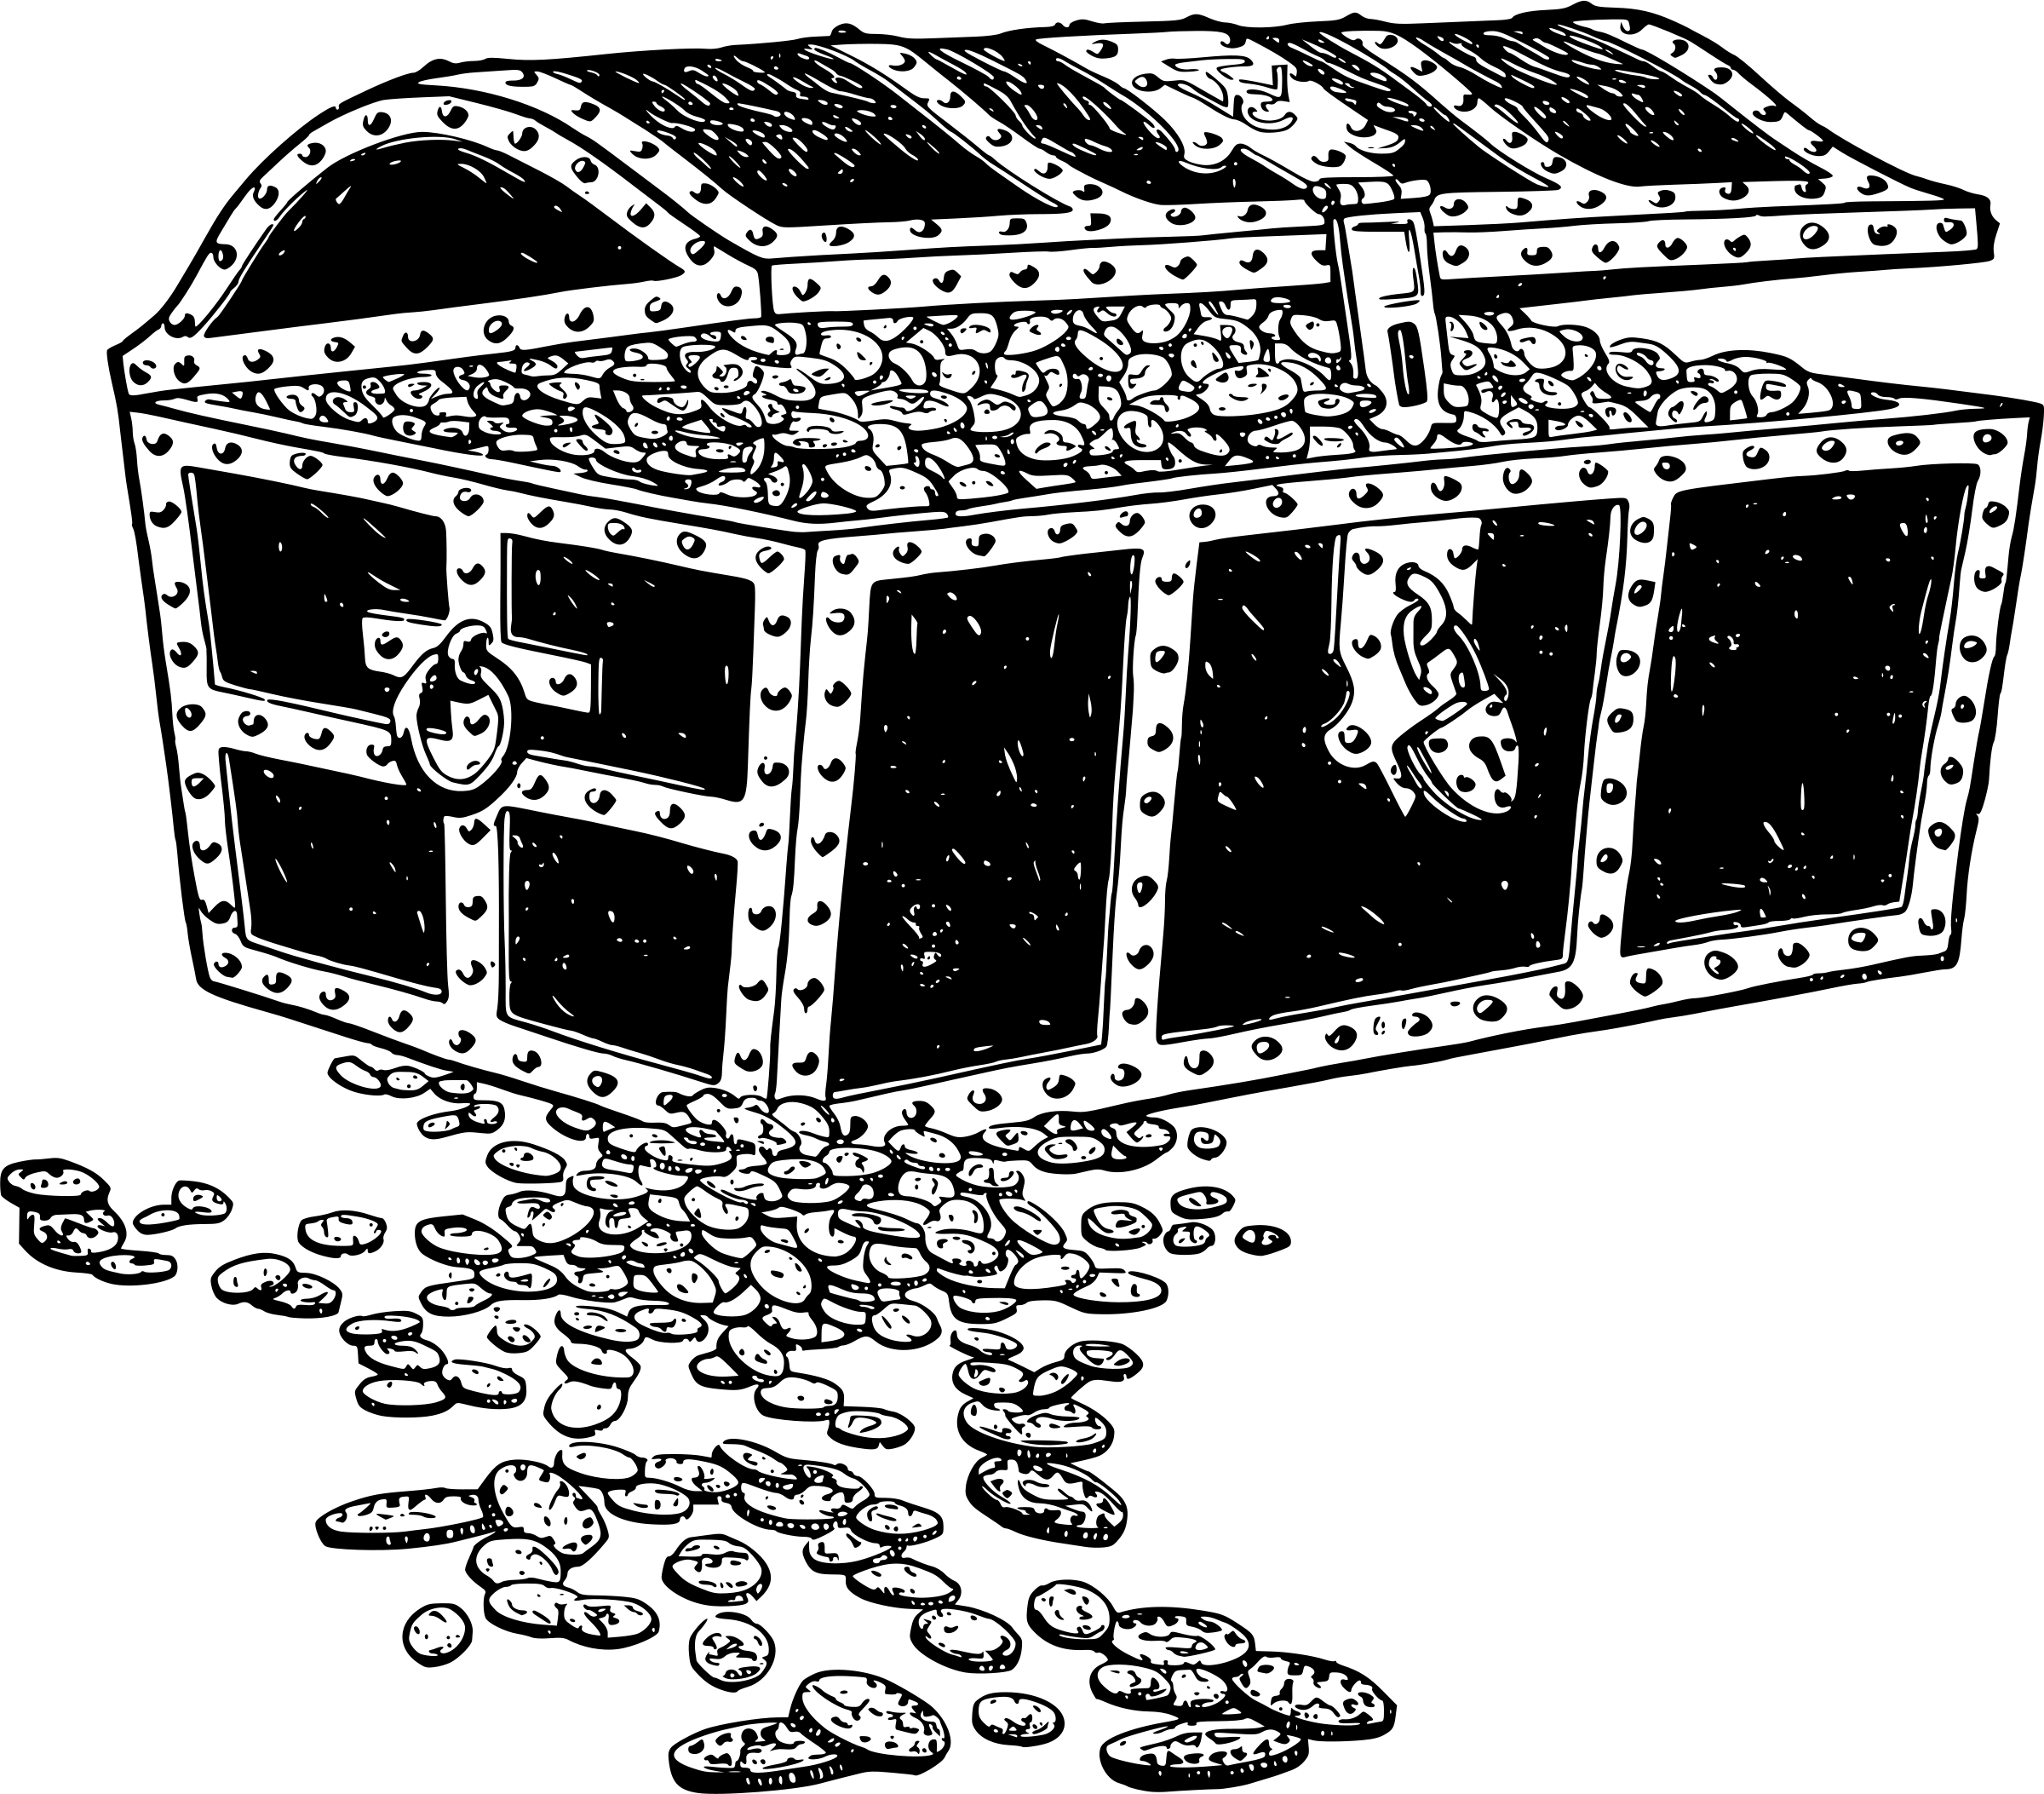 Treasure Chest Black and White Clipart transparent PNG.